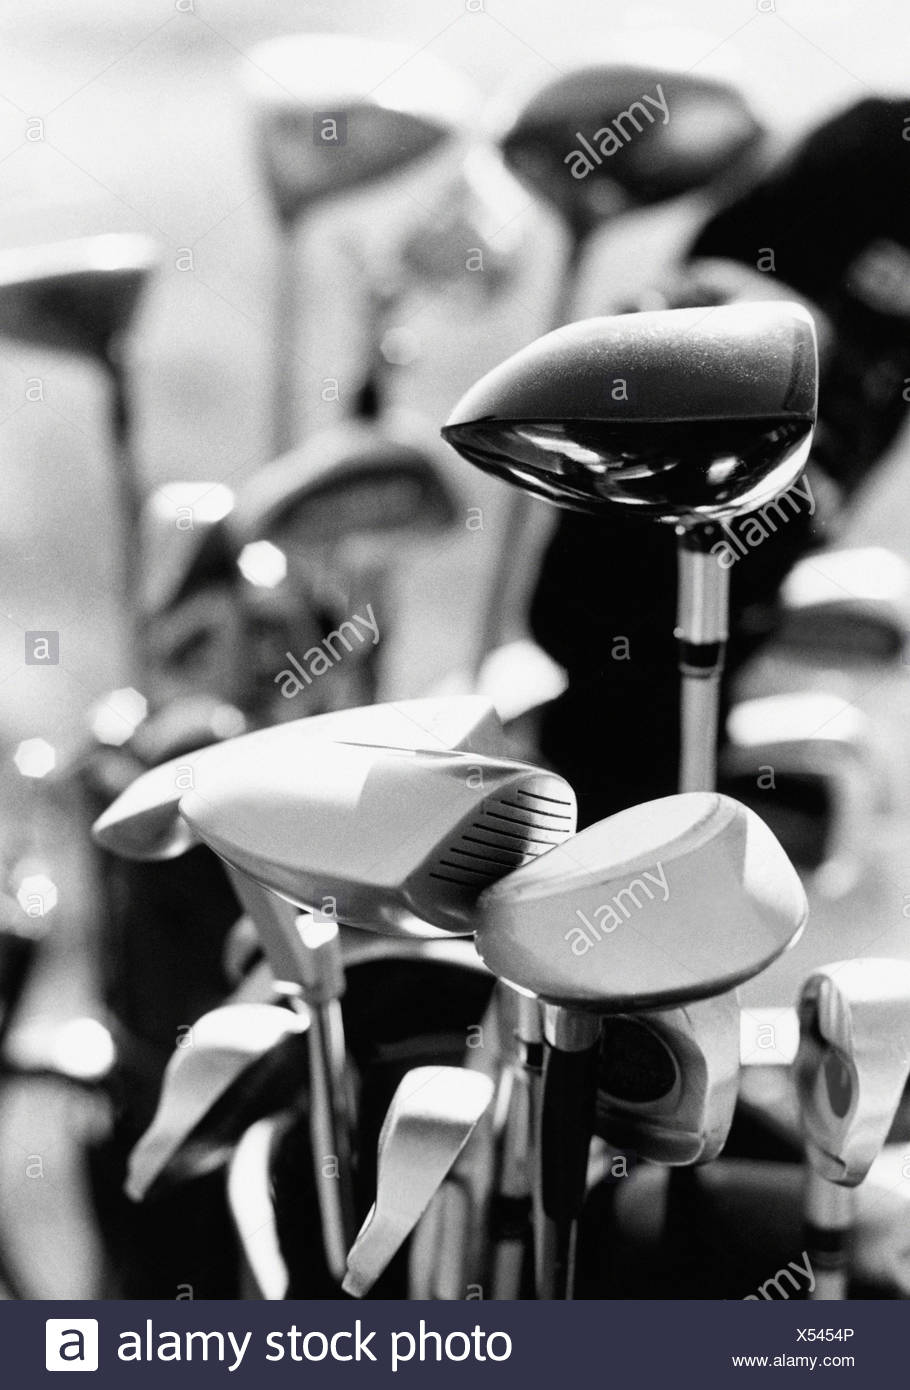 Golf clubs - Stock Image